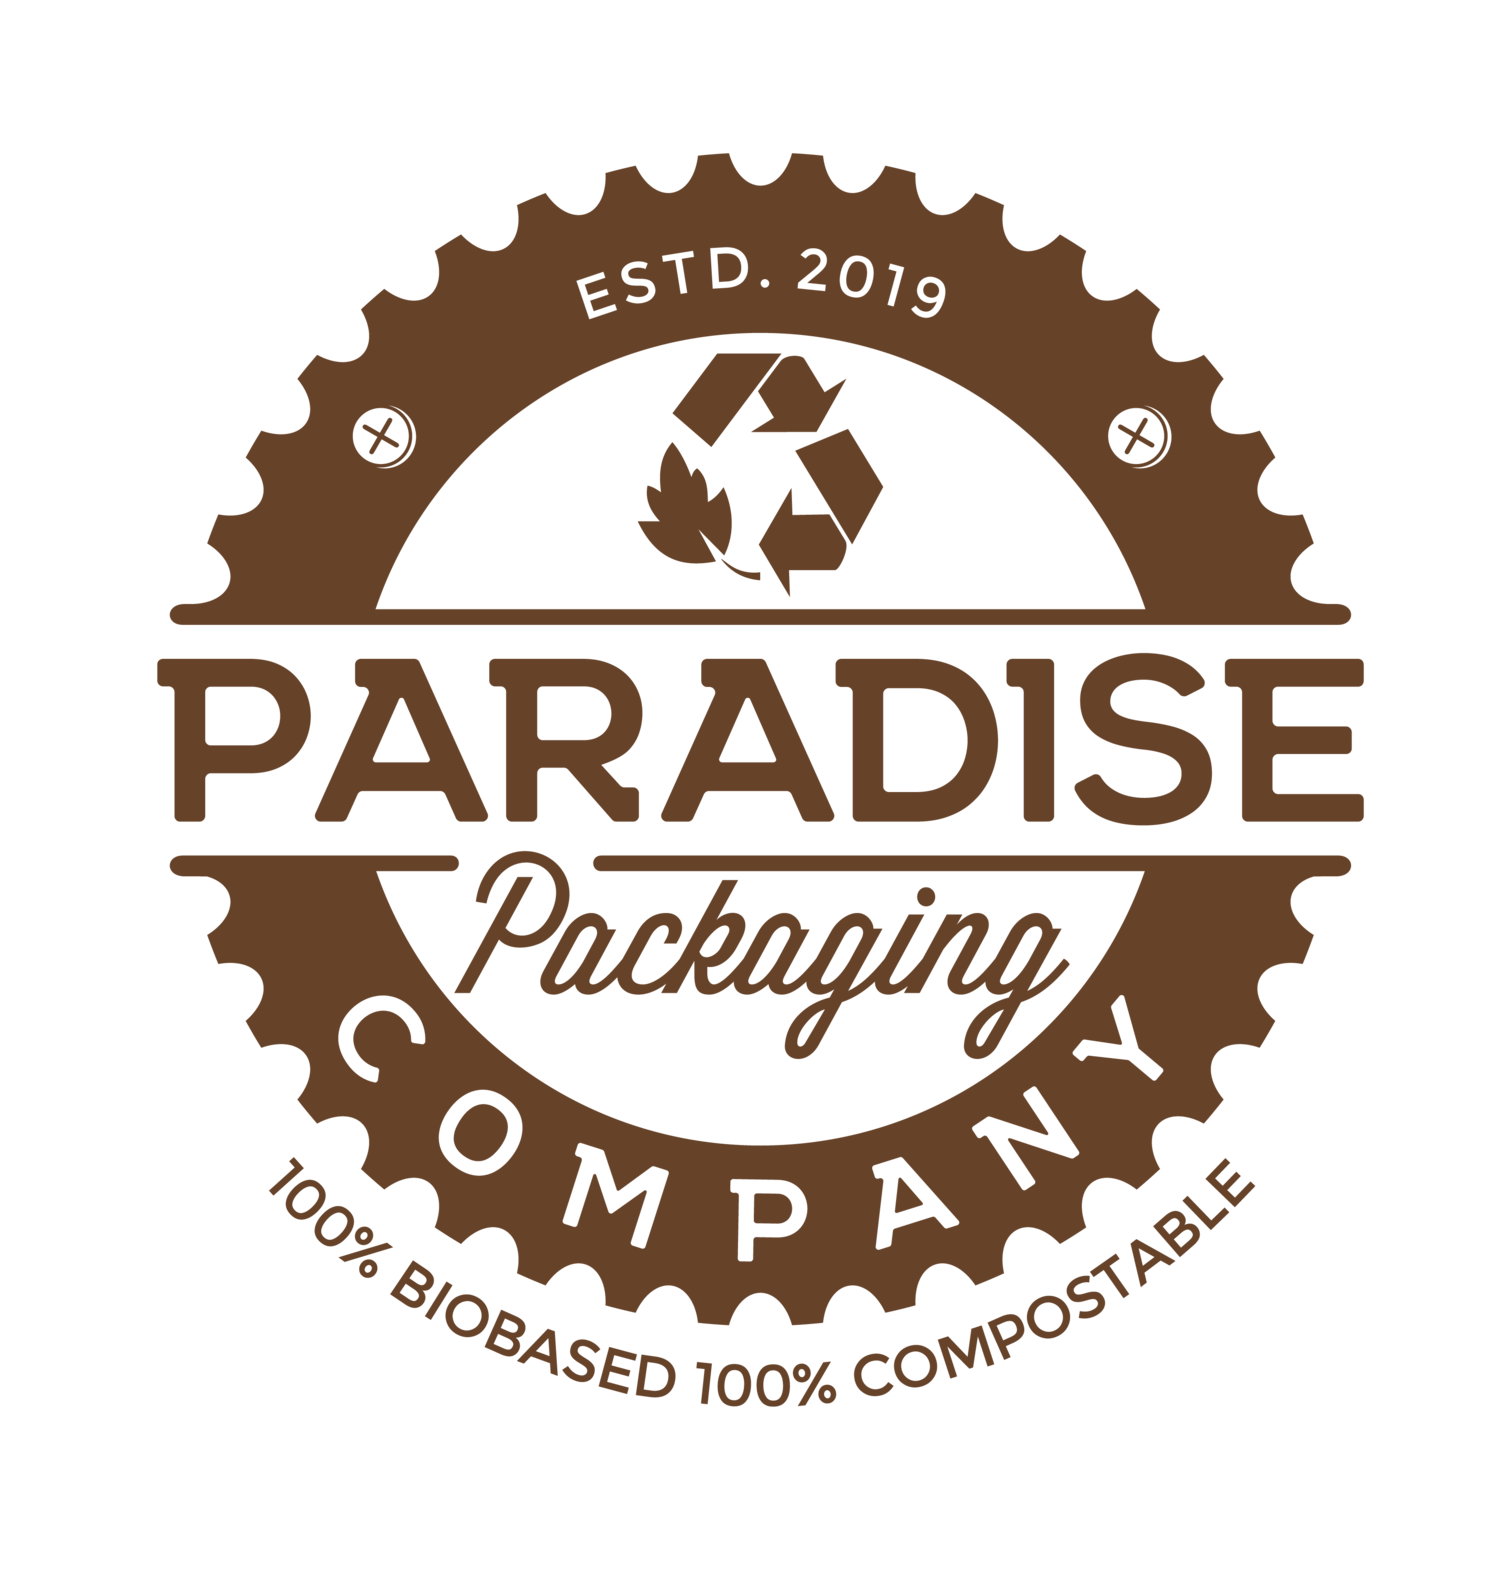 Paradise Packaging